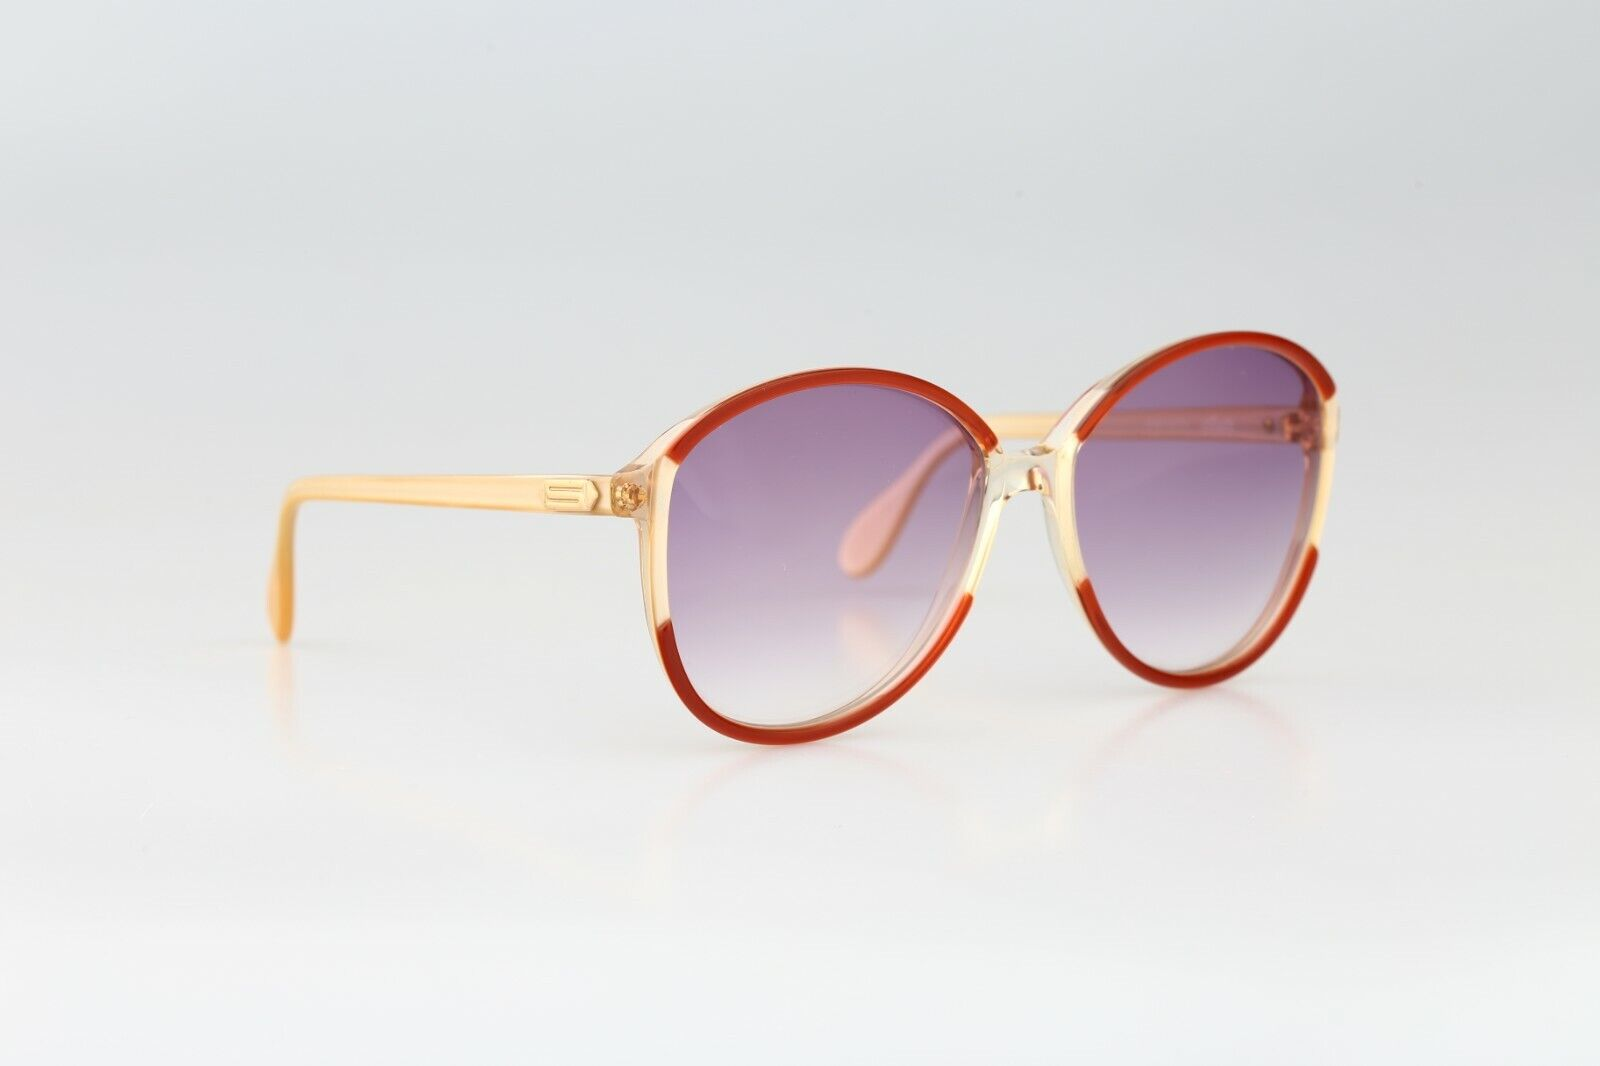 Silhouette M 1126 20 C 2713, Vintage 70s red & cl… - image 4